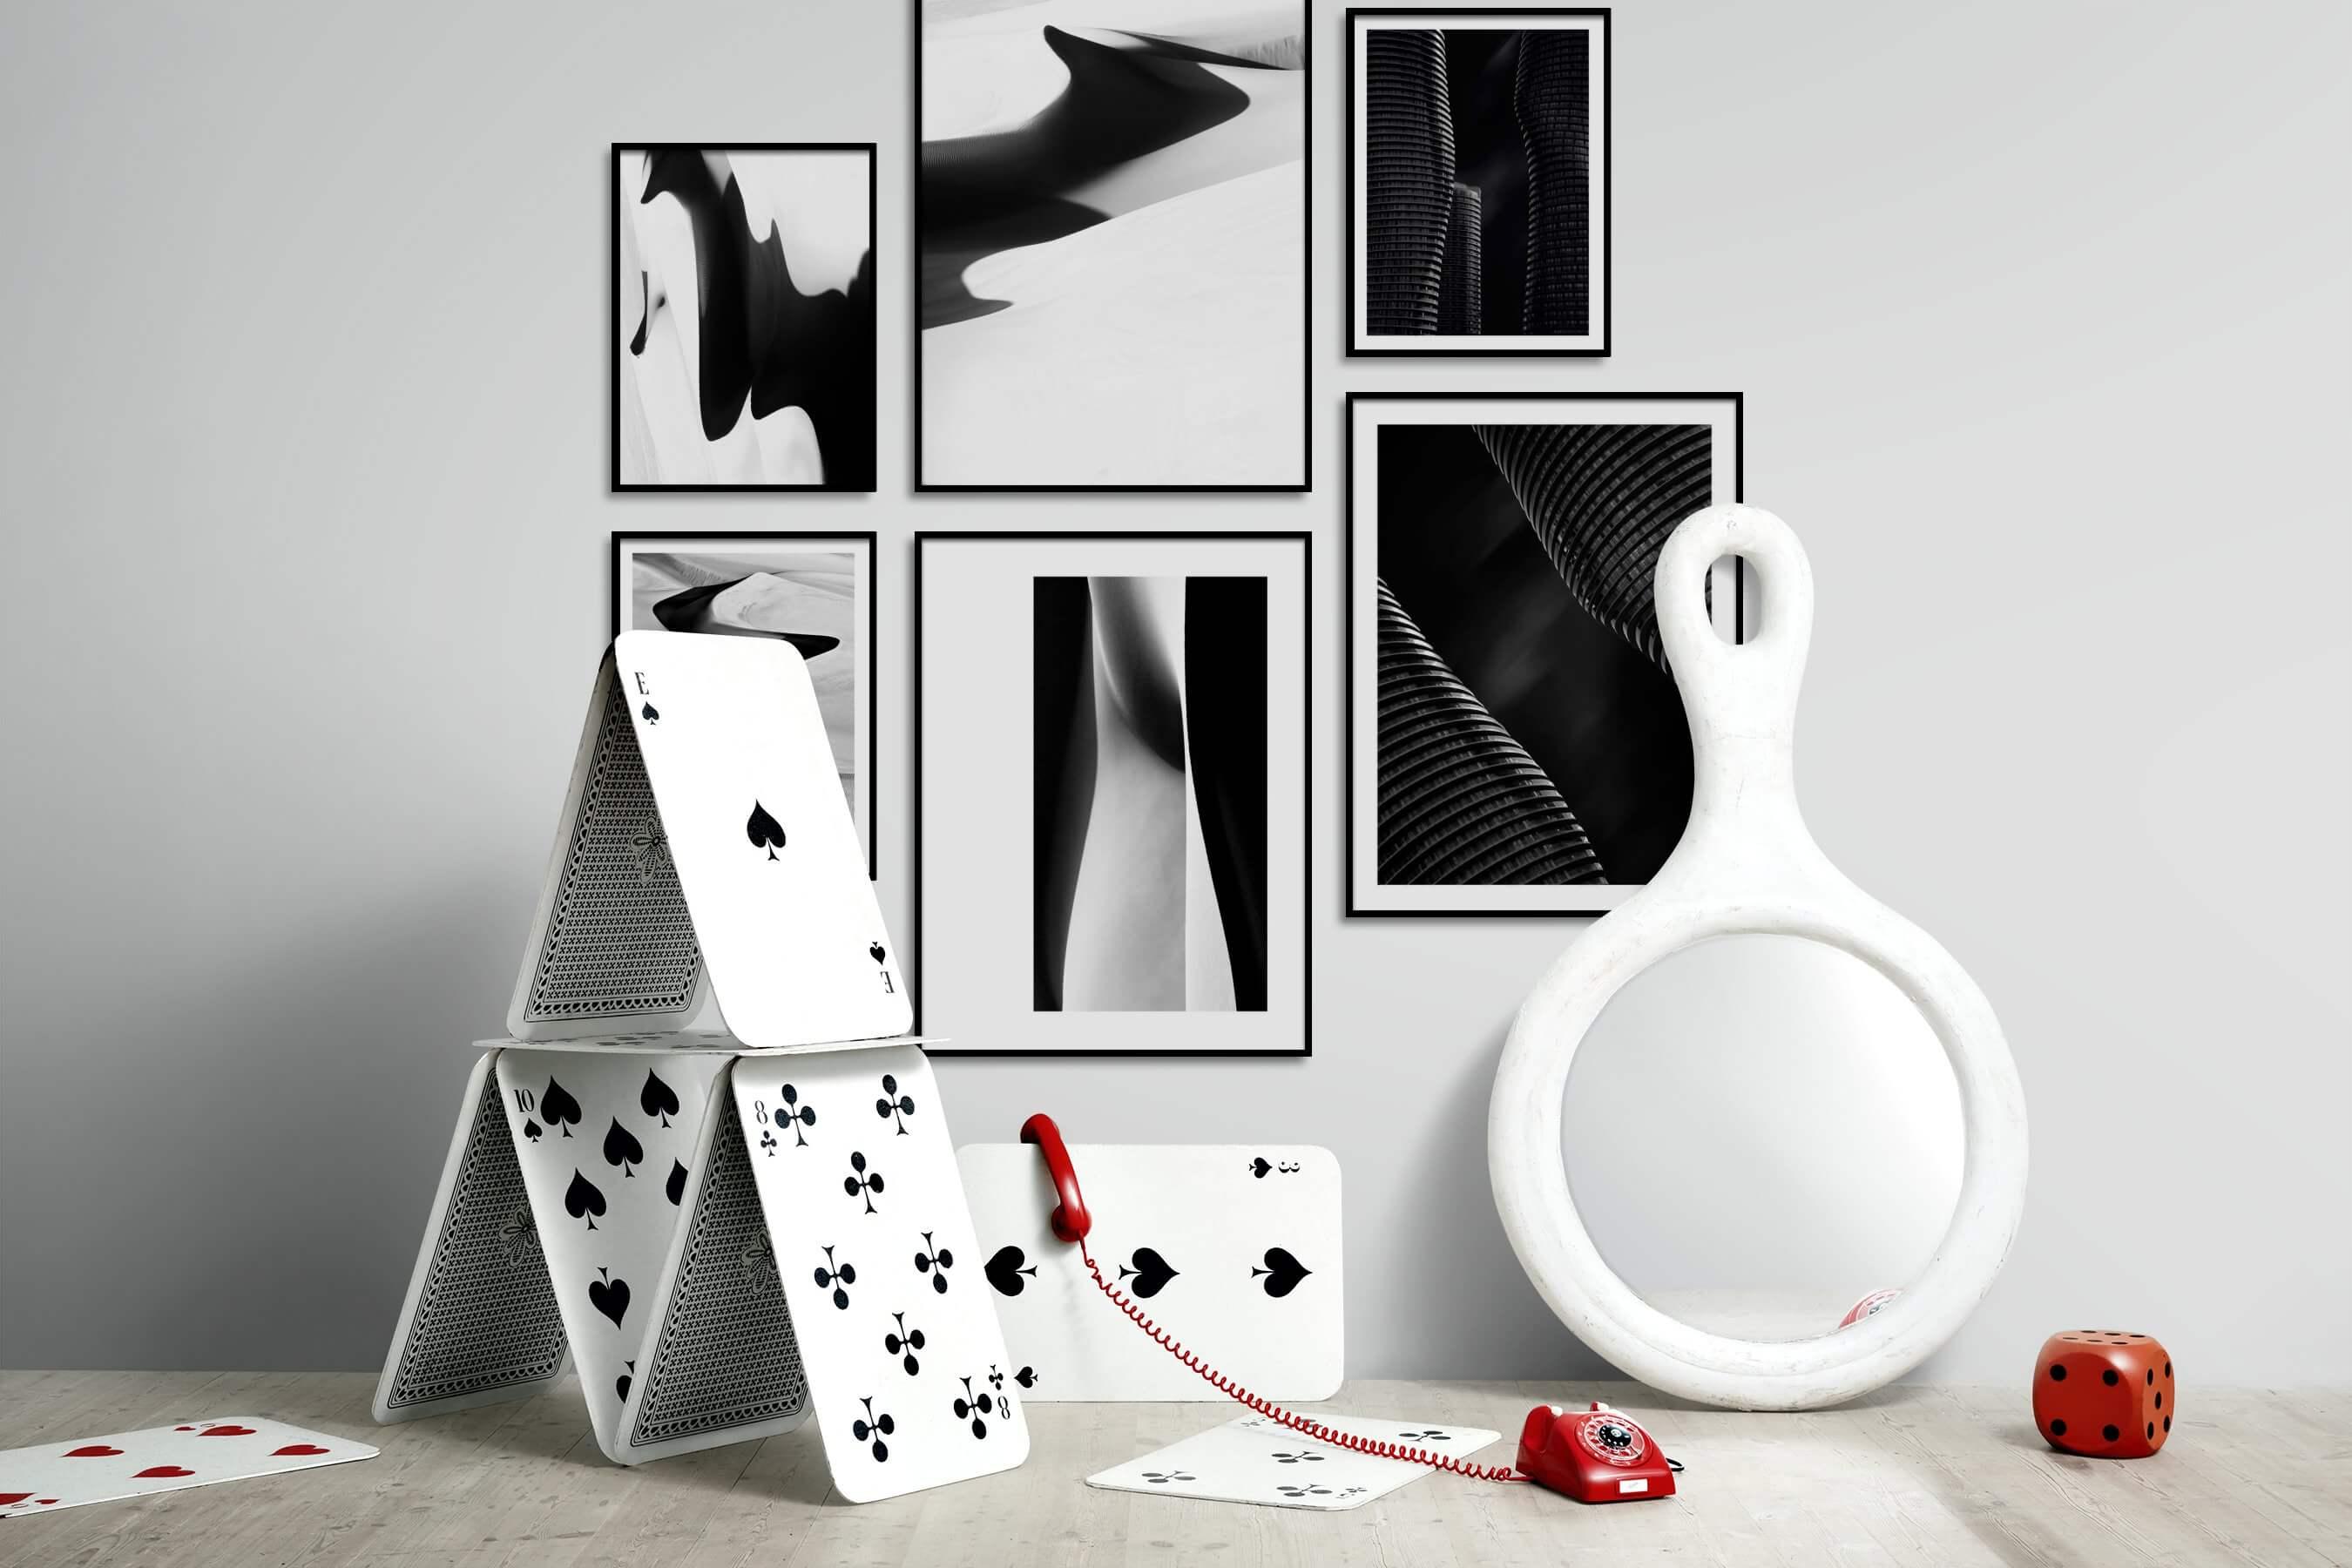 Gallery wall idea with six framed pictures arranged on a wall depicting Black & White, For the Minimalist, Nature, For the Moderate, and City Life